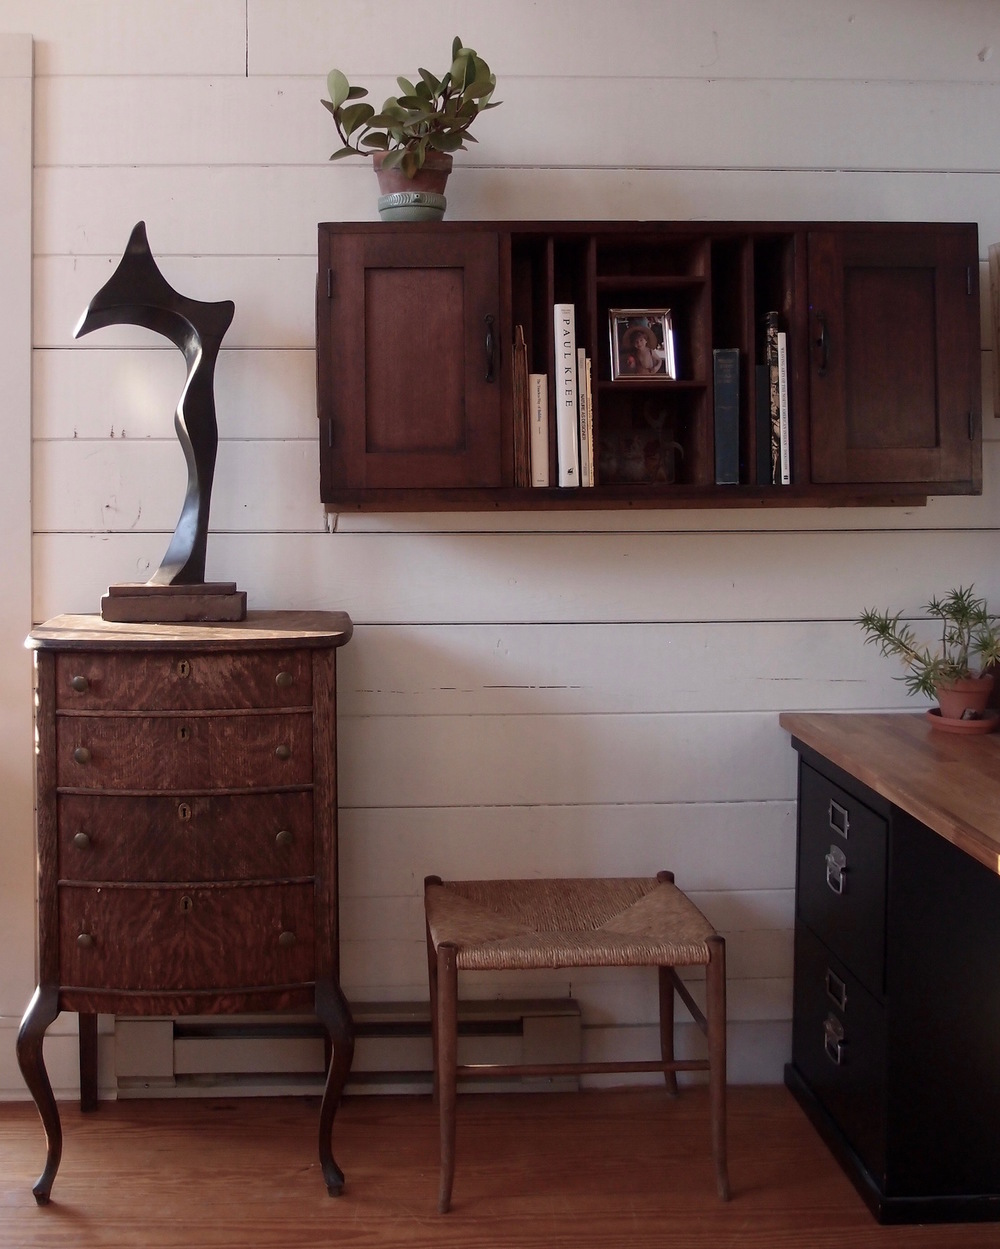 antique mail cabinet and sculpture by Justin Long